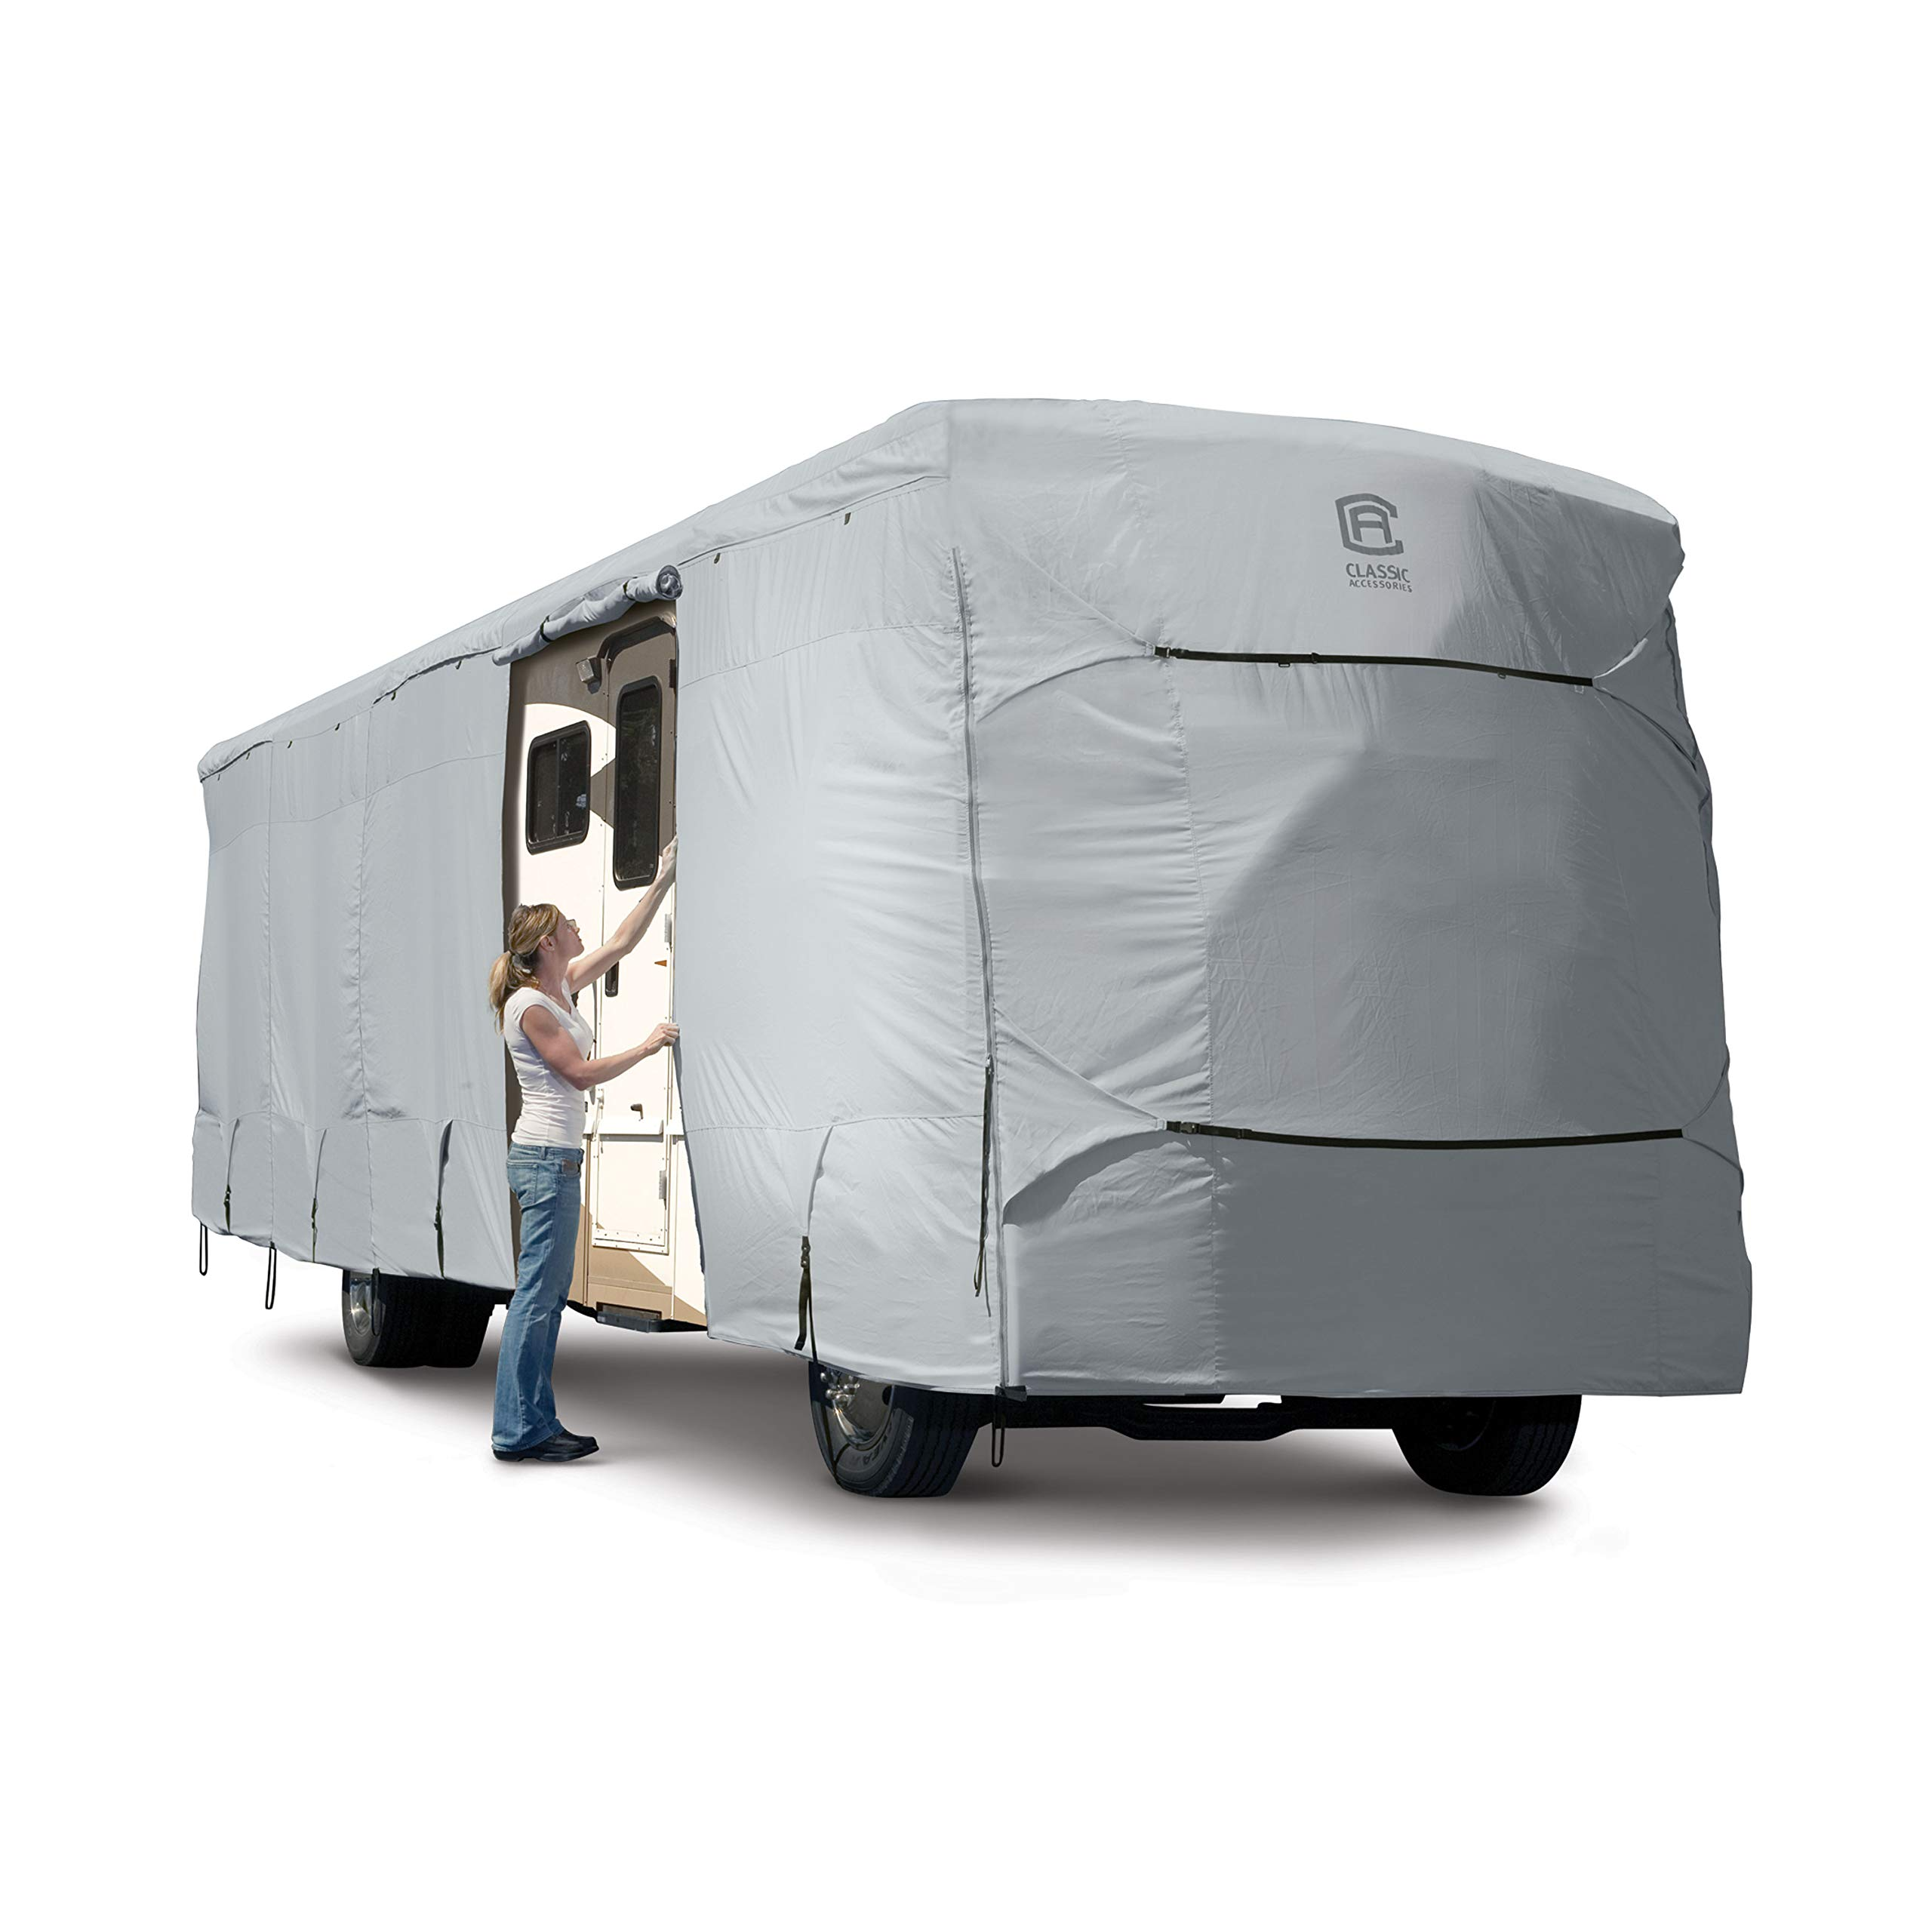 Classic Accessories OverDrive PermaPro Heavy Duty Cover for 33' to 37' Class A RVs